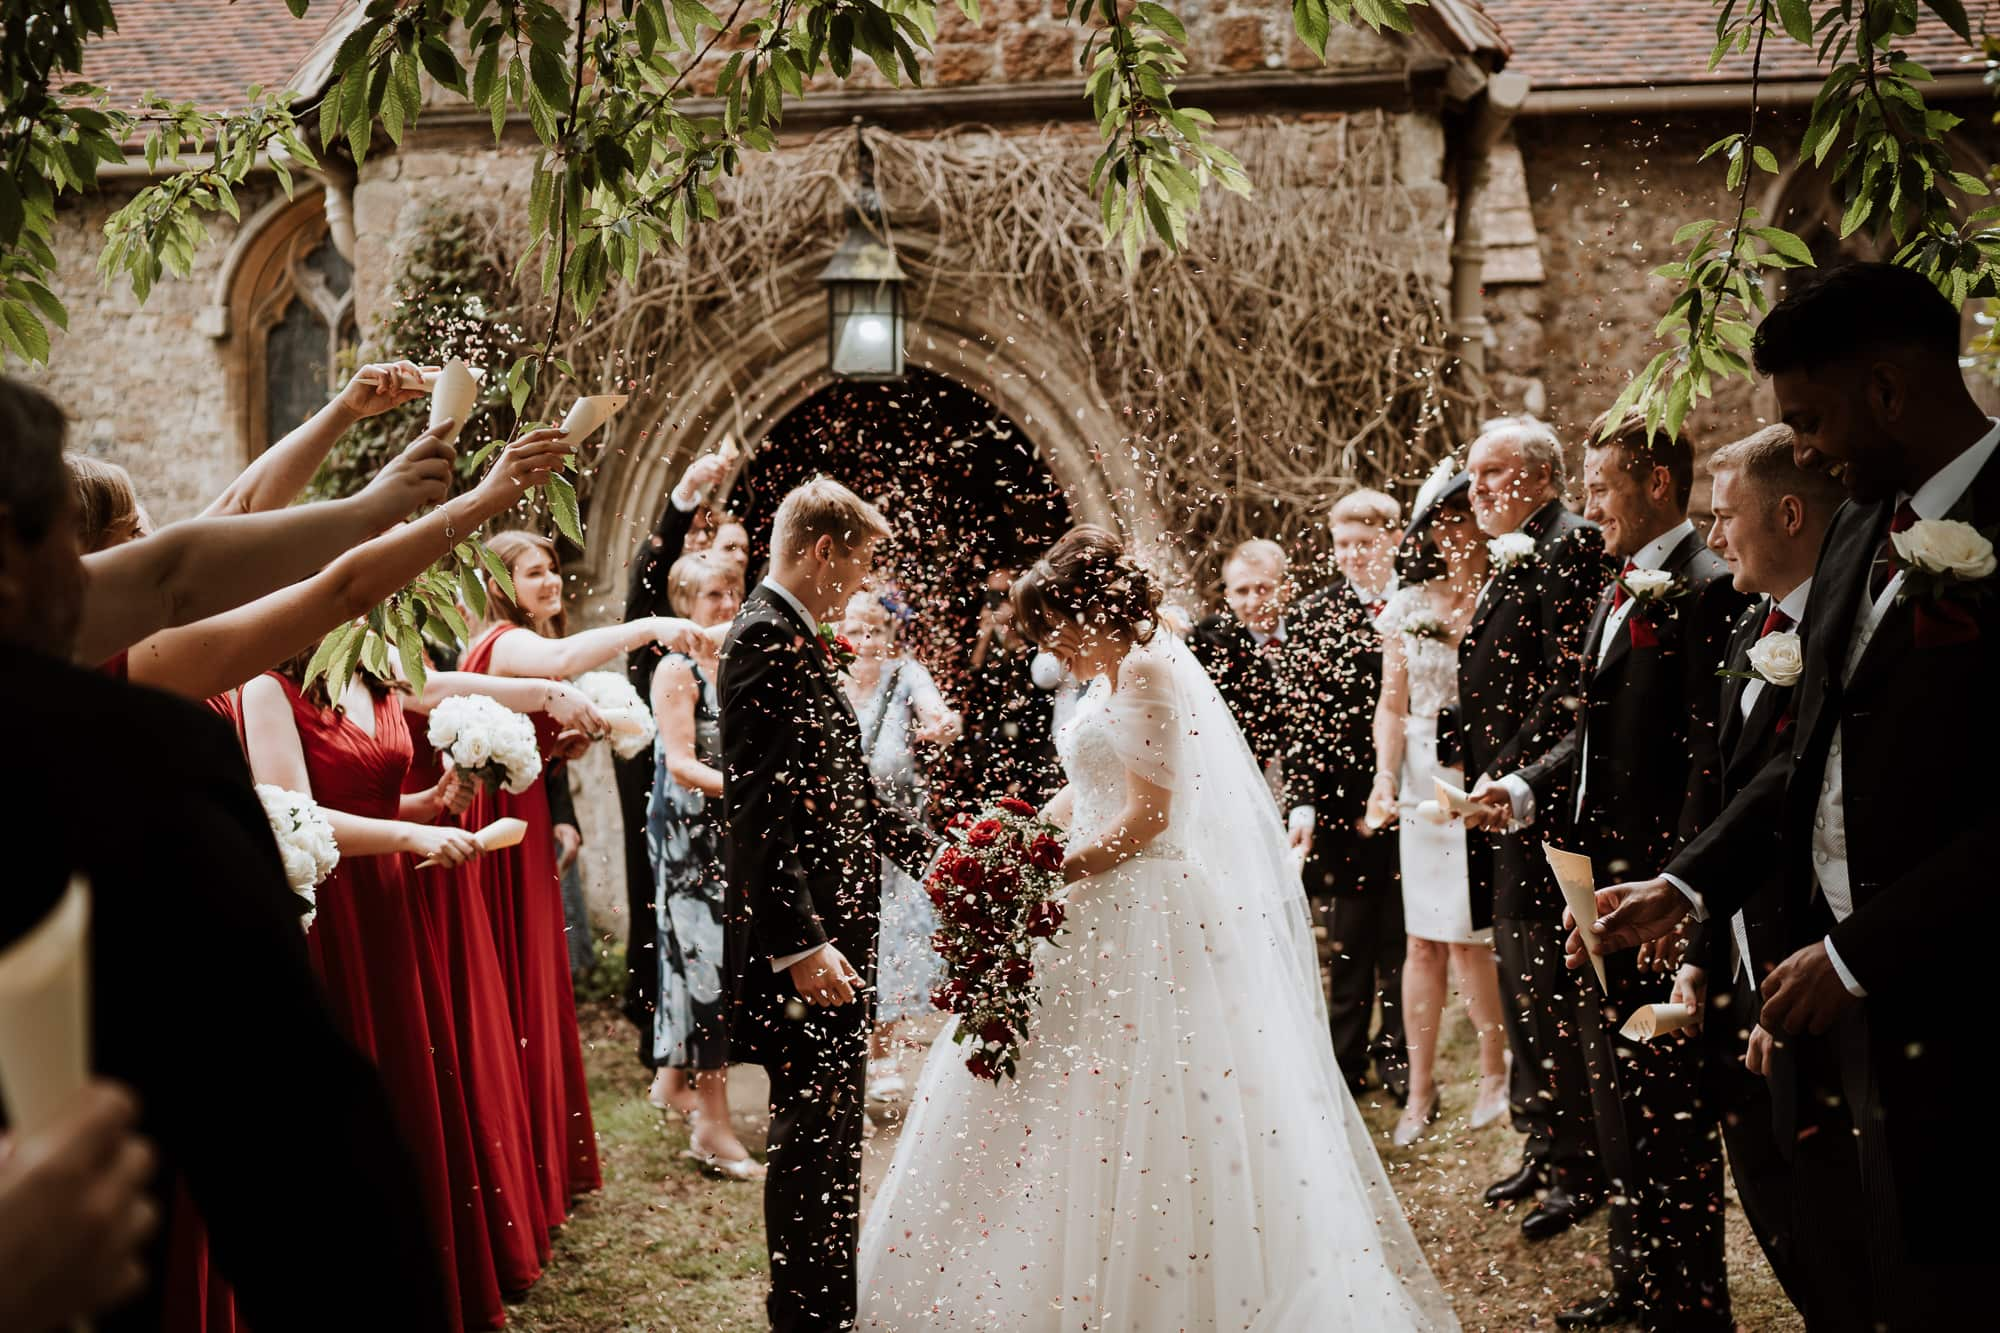 Bride and Groom being showered in confetti after their Kent Church Wedding